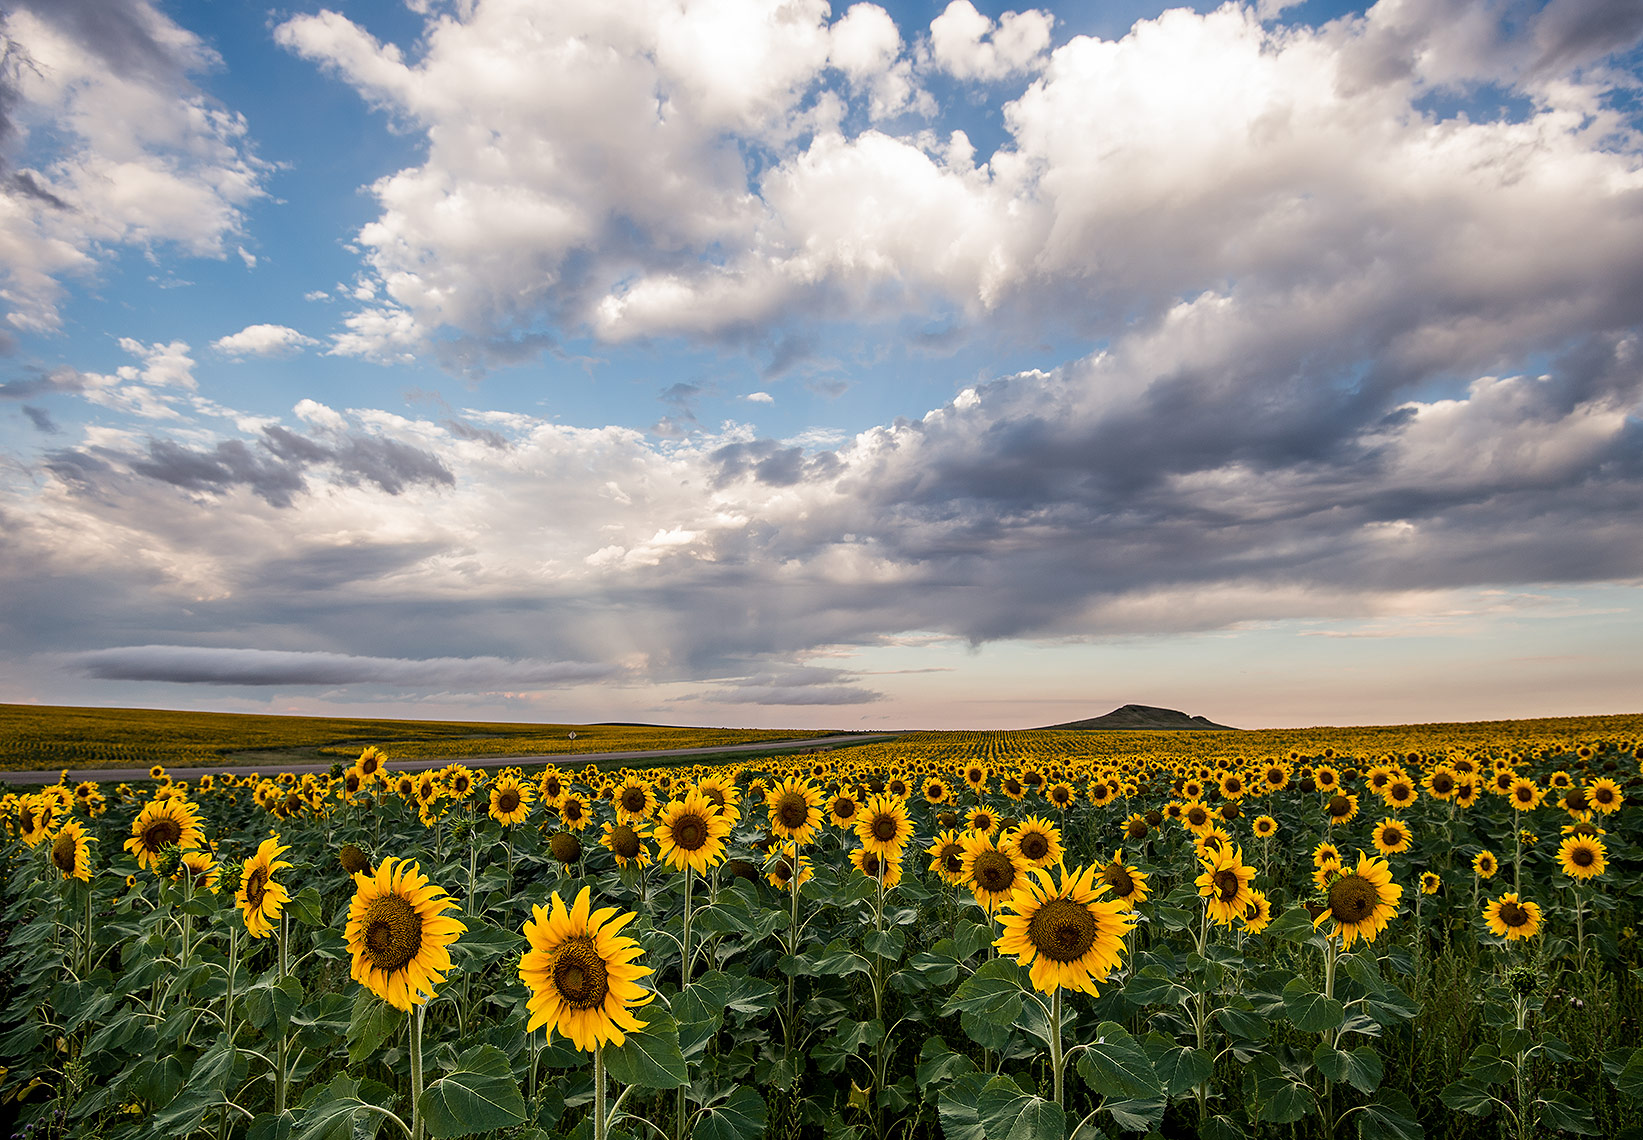 Sunflower Field and Clouds